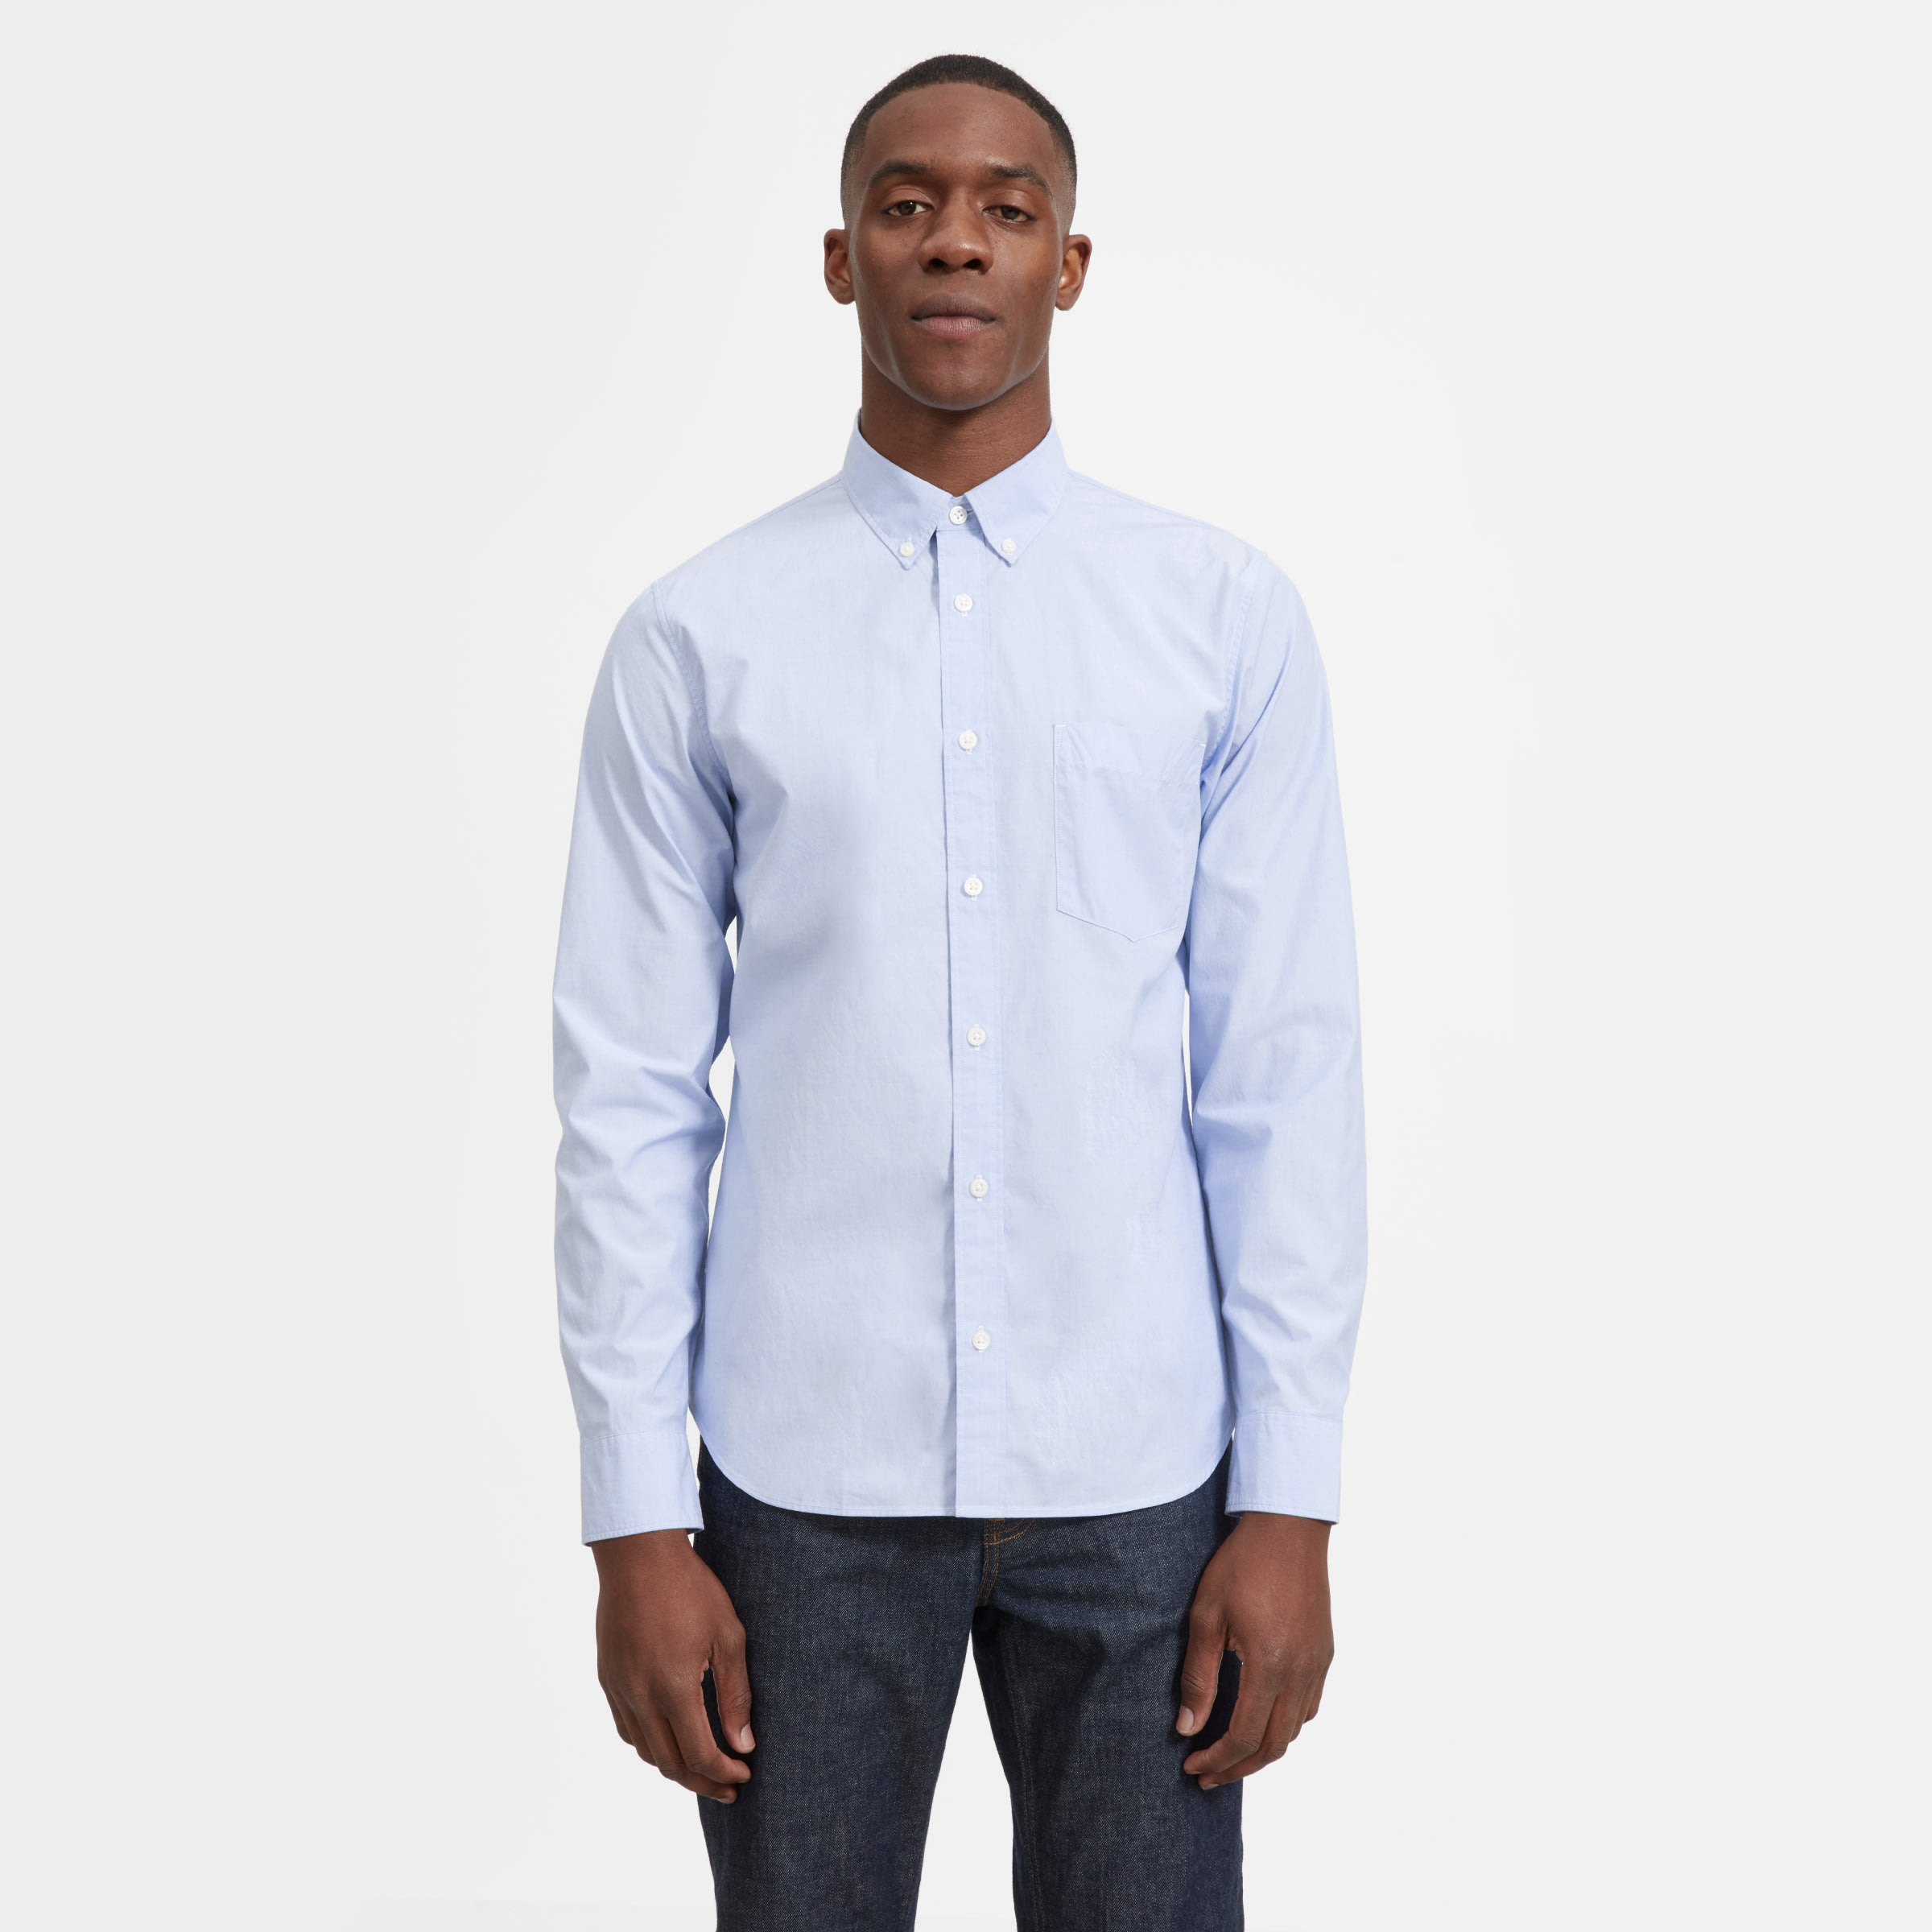 e2bb5eb10460 Men's Cotton Slim Fit Shirt | Everlane